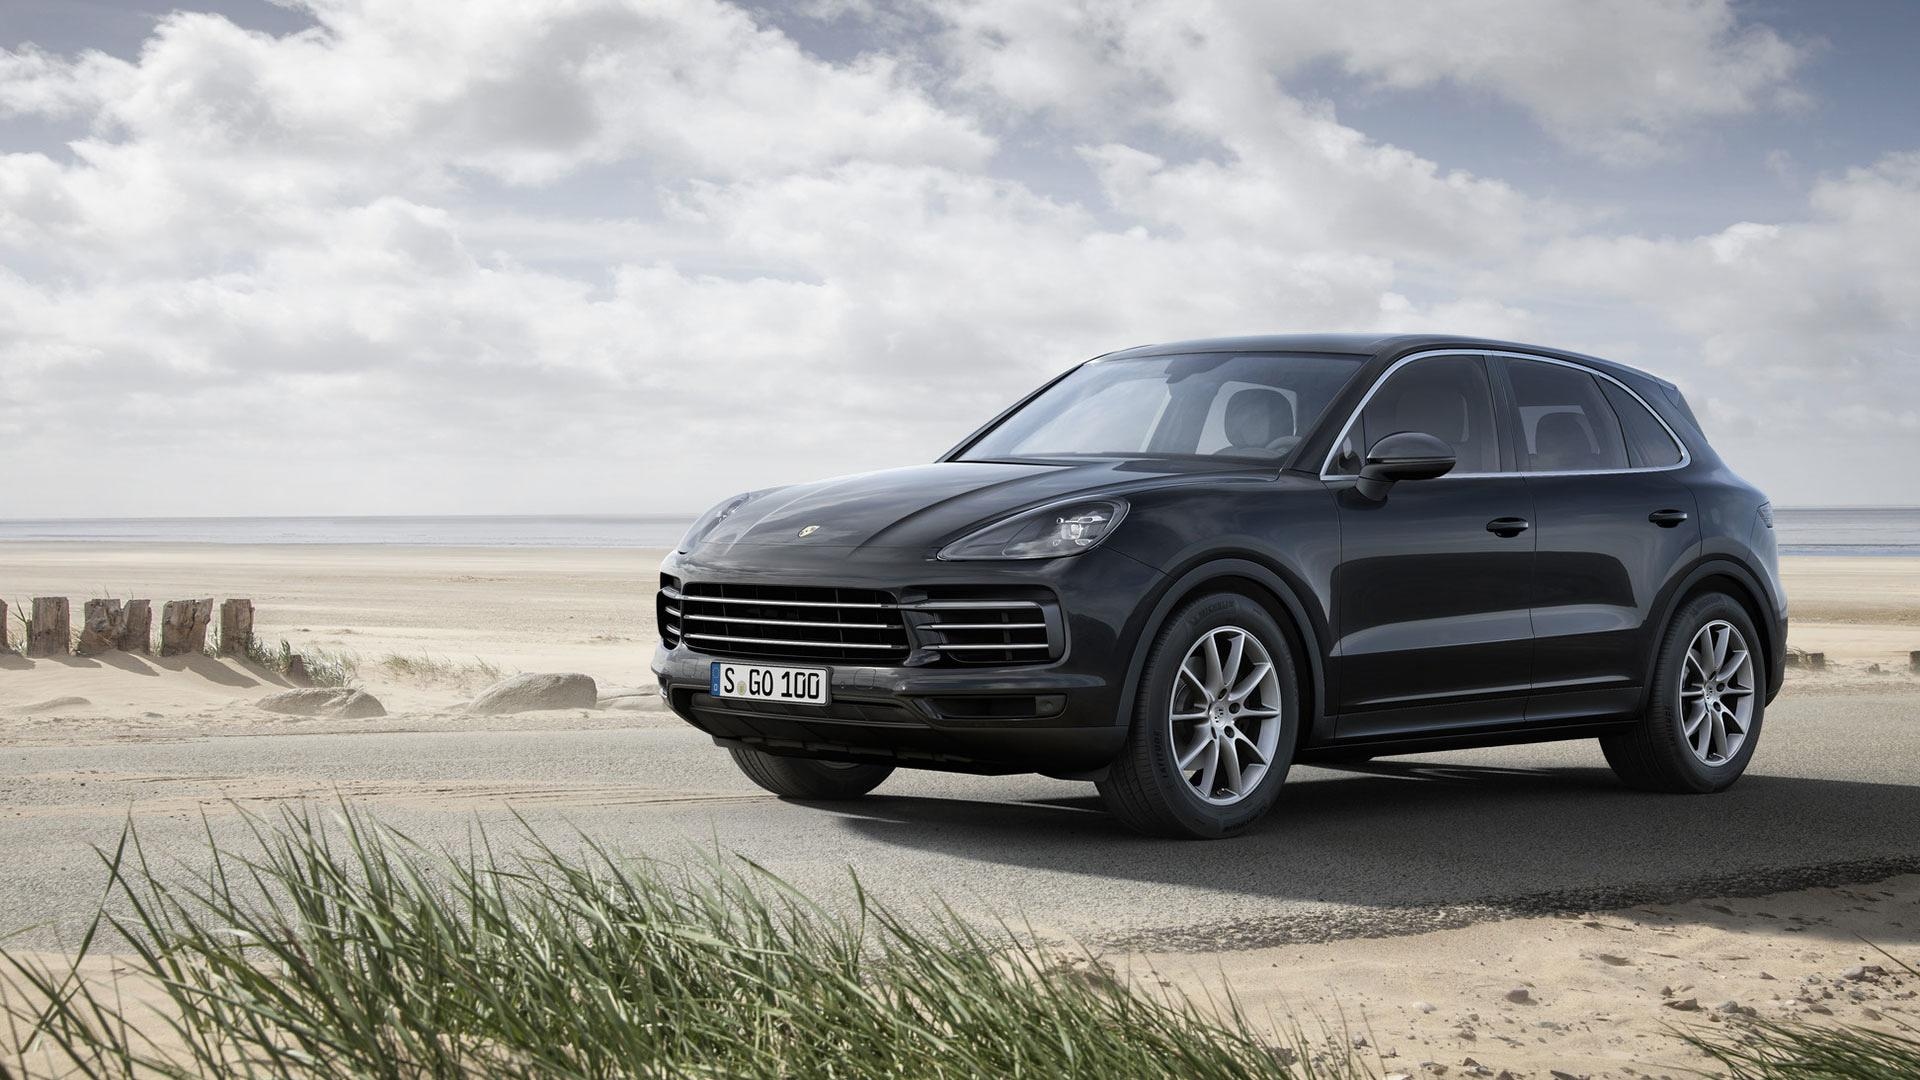 2019 porsche cayenne gts rendered as the suv porsche may not build anymore autoevolution. Black Bedroom Furniture Sets. Home Design Ideas